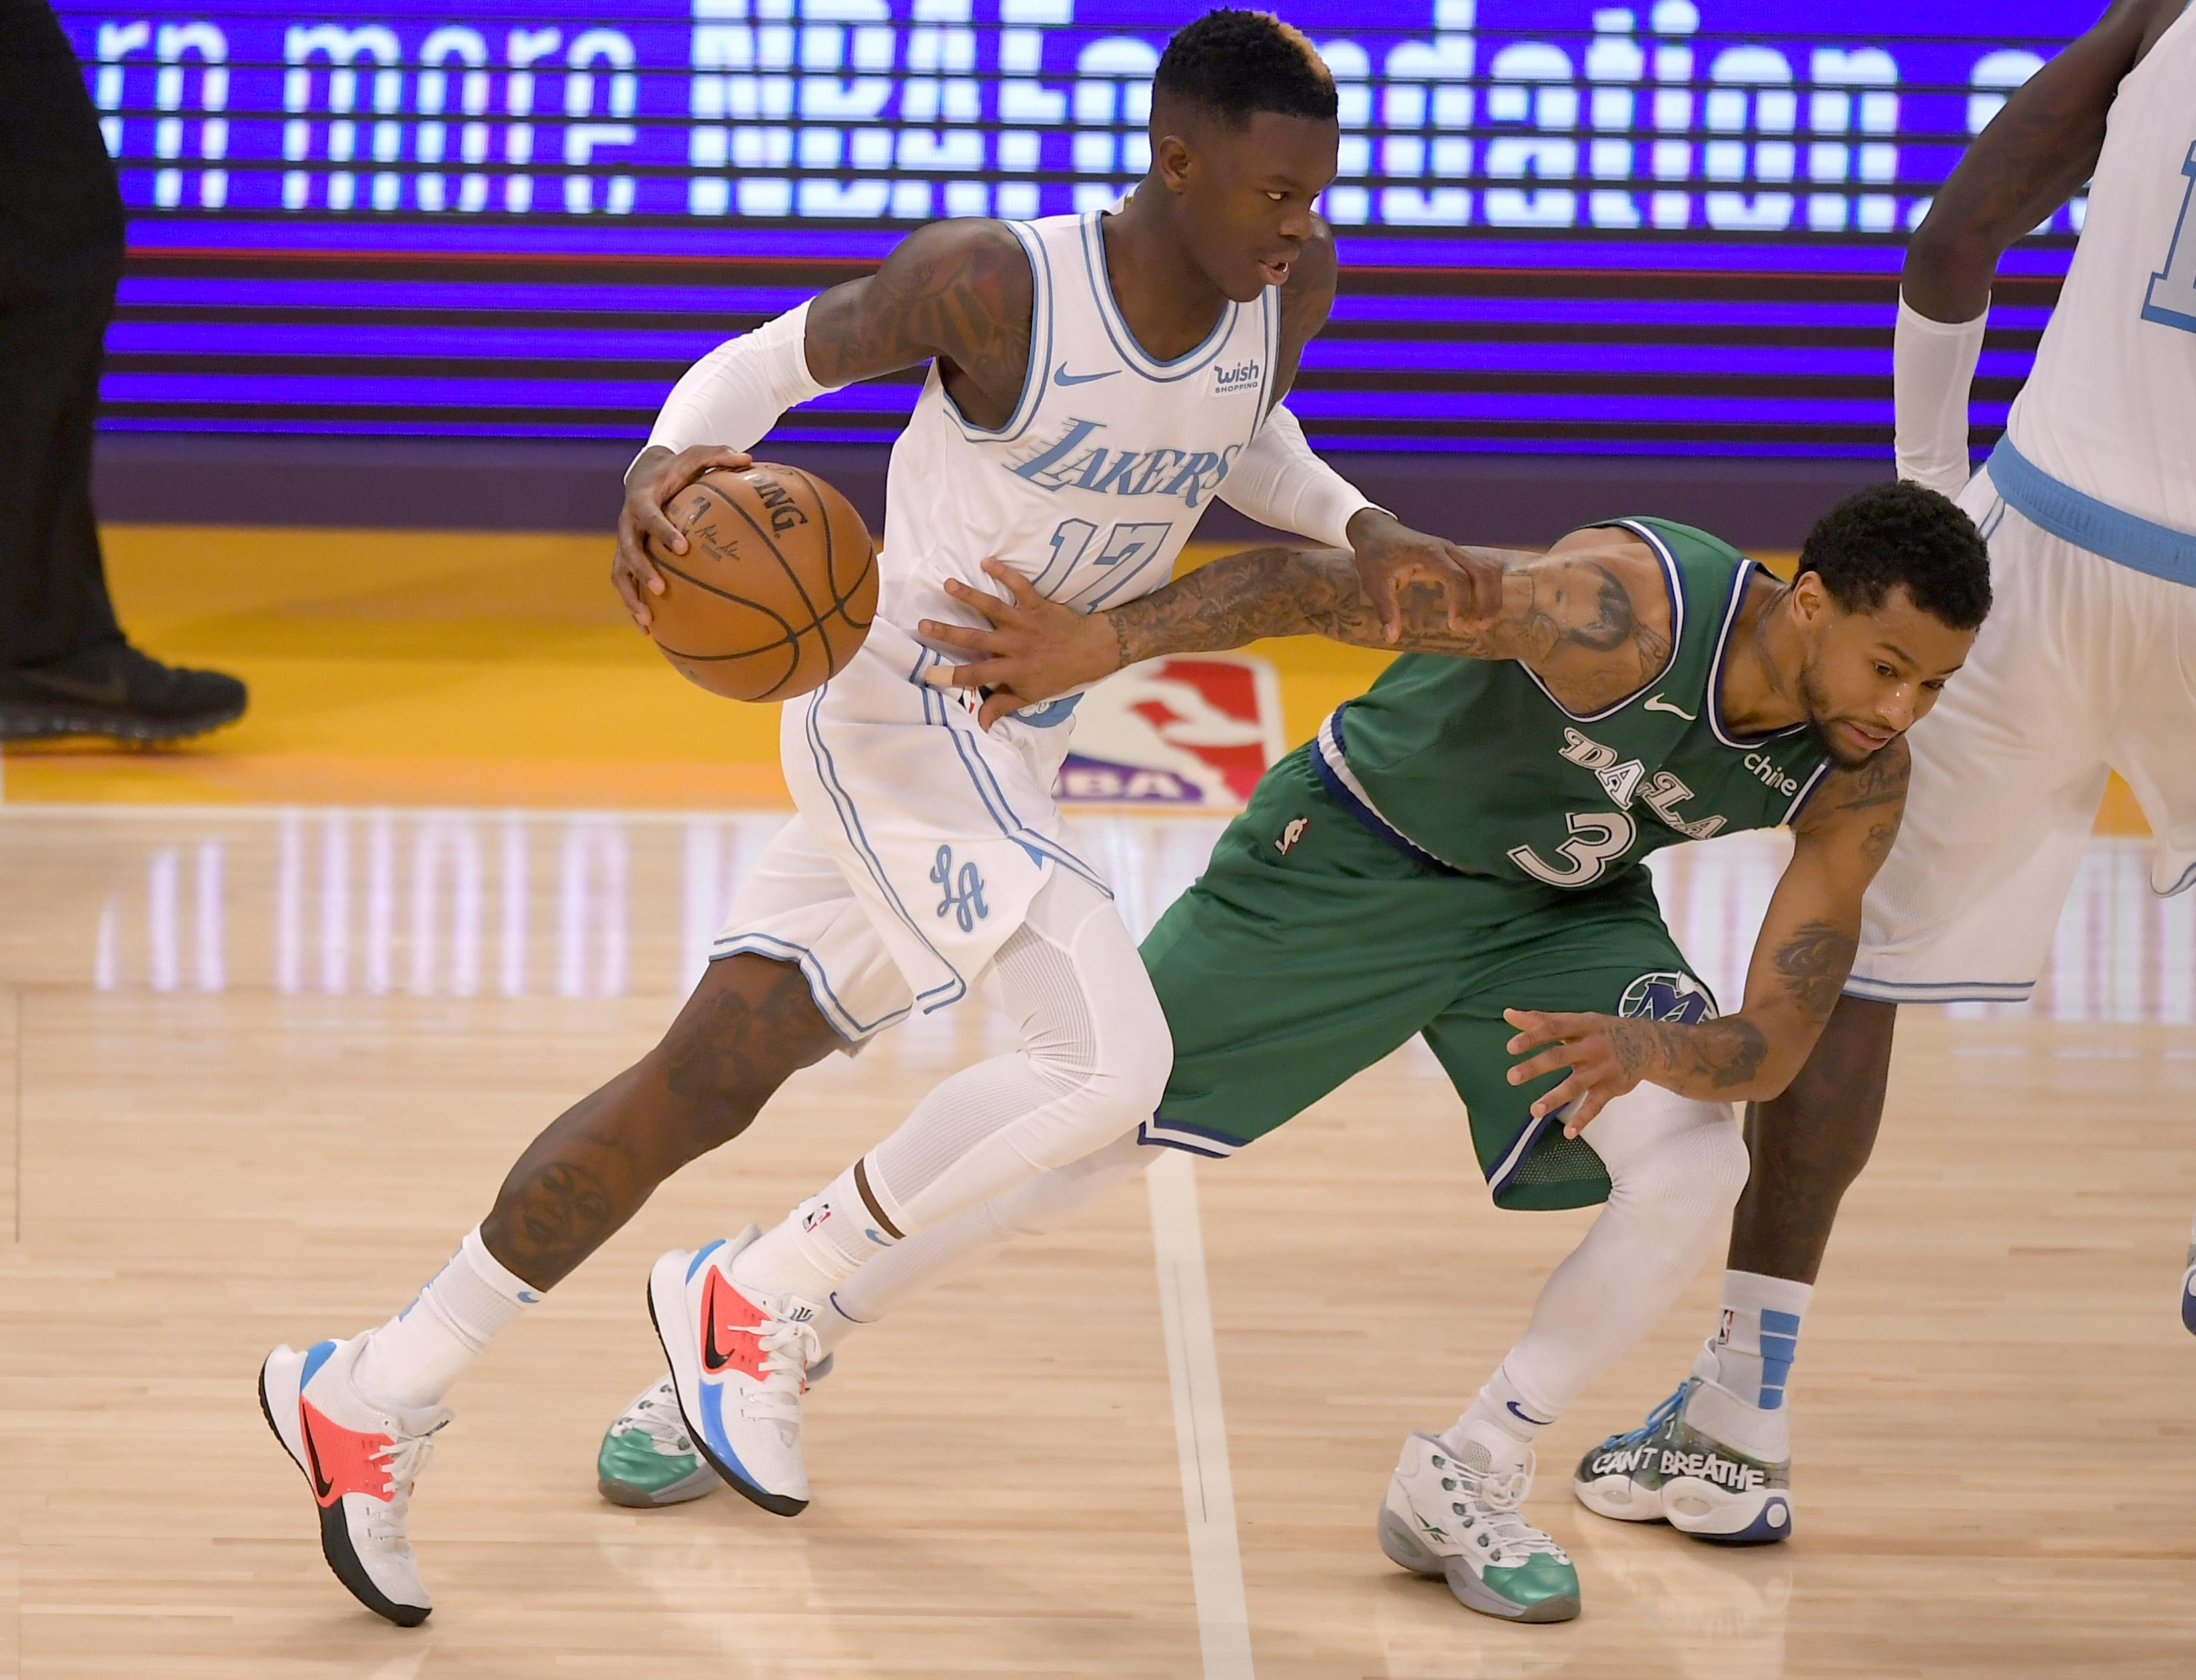 Trey Burke #3 of the Dallas Mavericks guards Dennis Schroder #17 of the Los Angeles Lakers